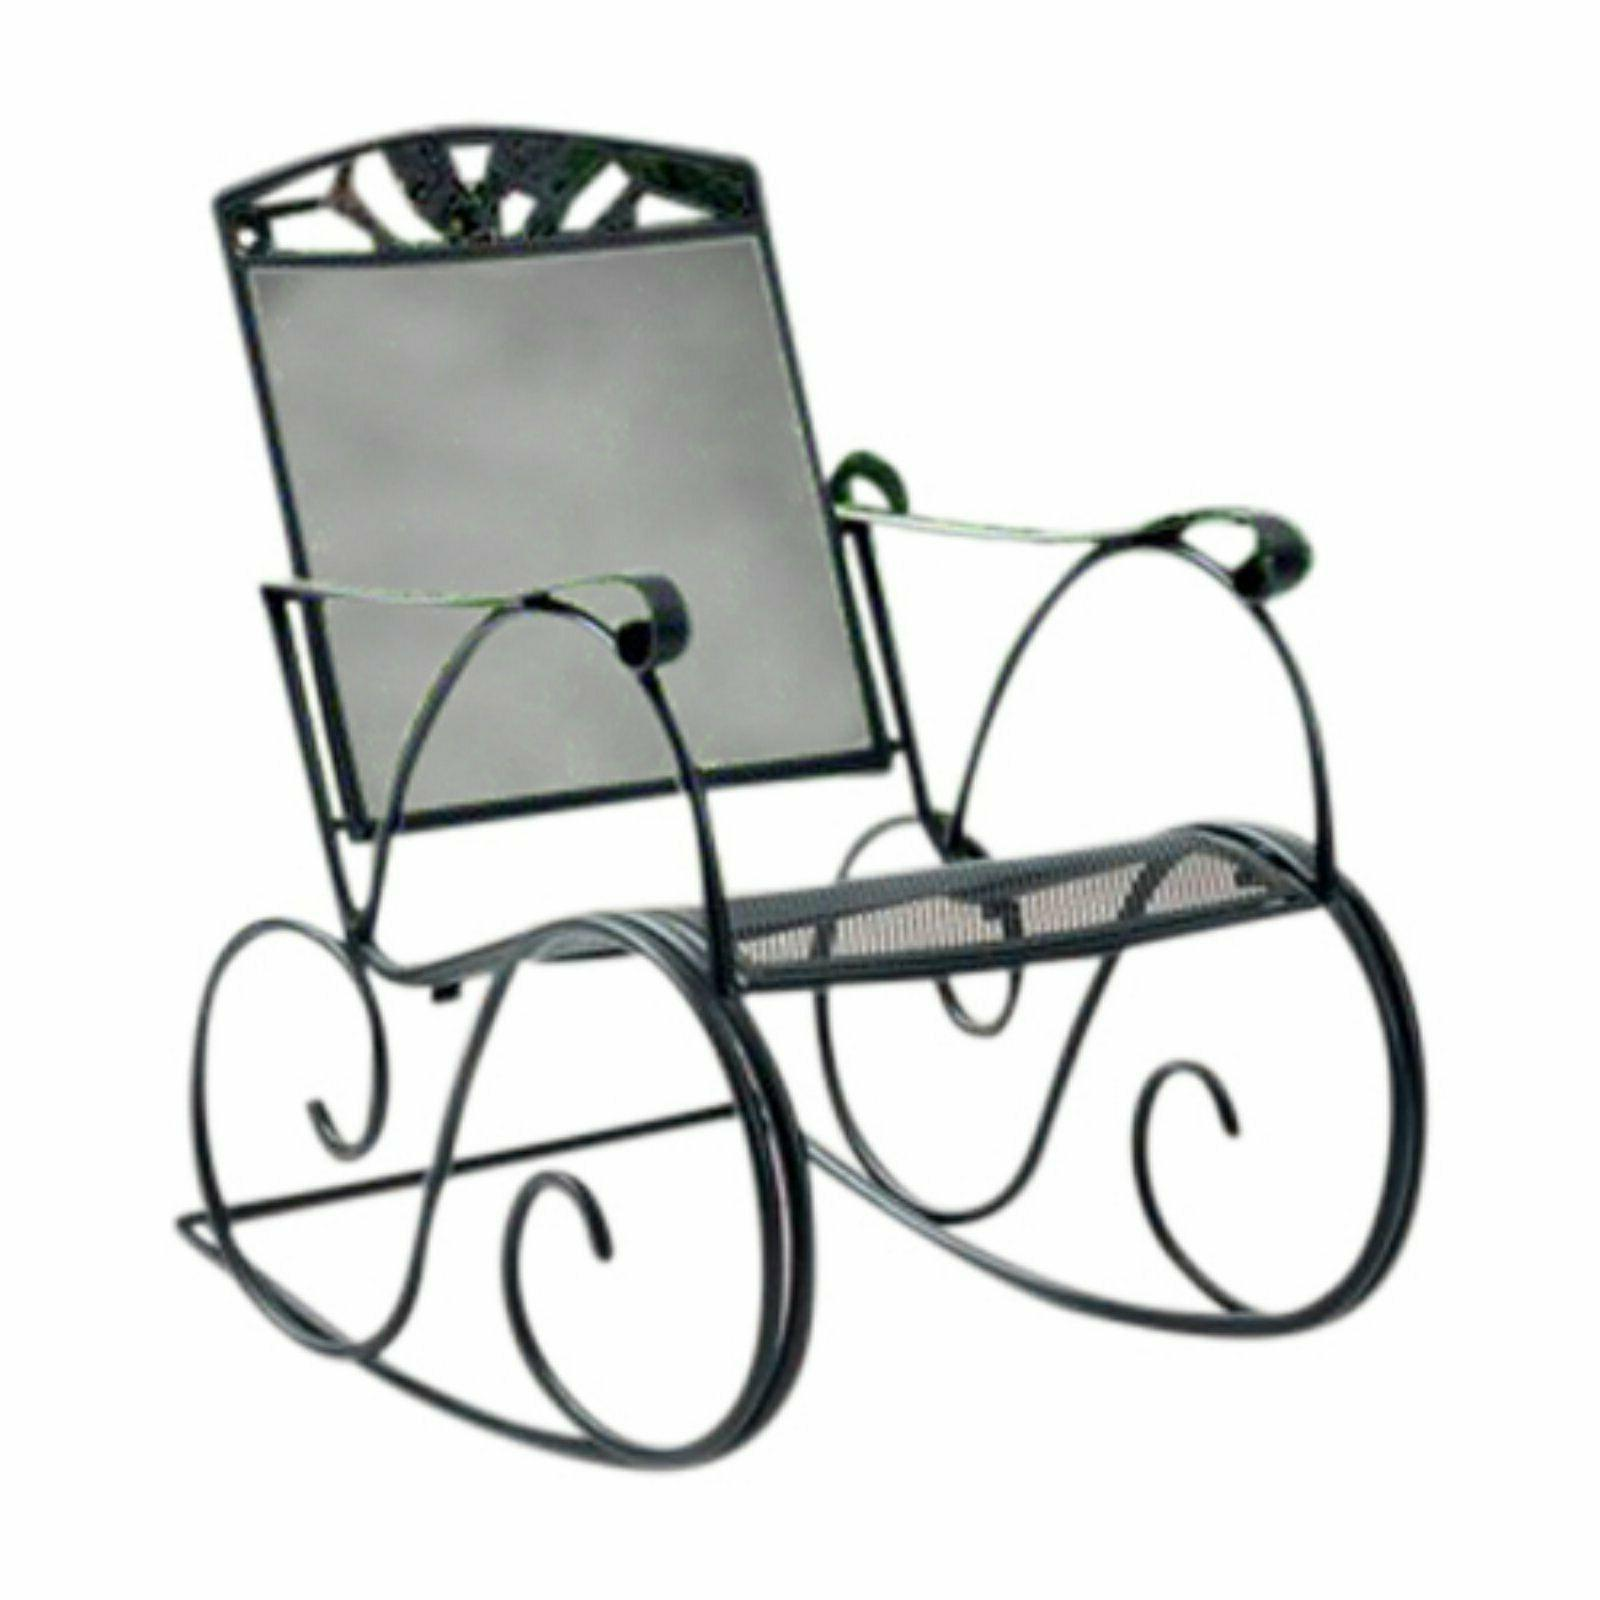 Mainstays Jefferson Outdoor Wrought Iron Black Chair